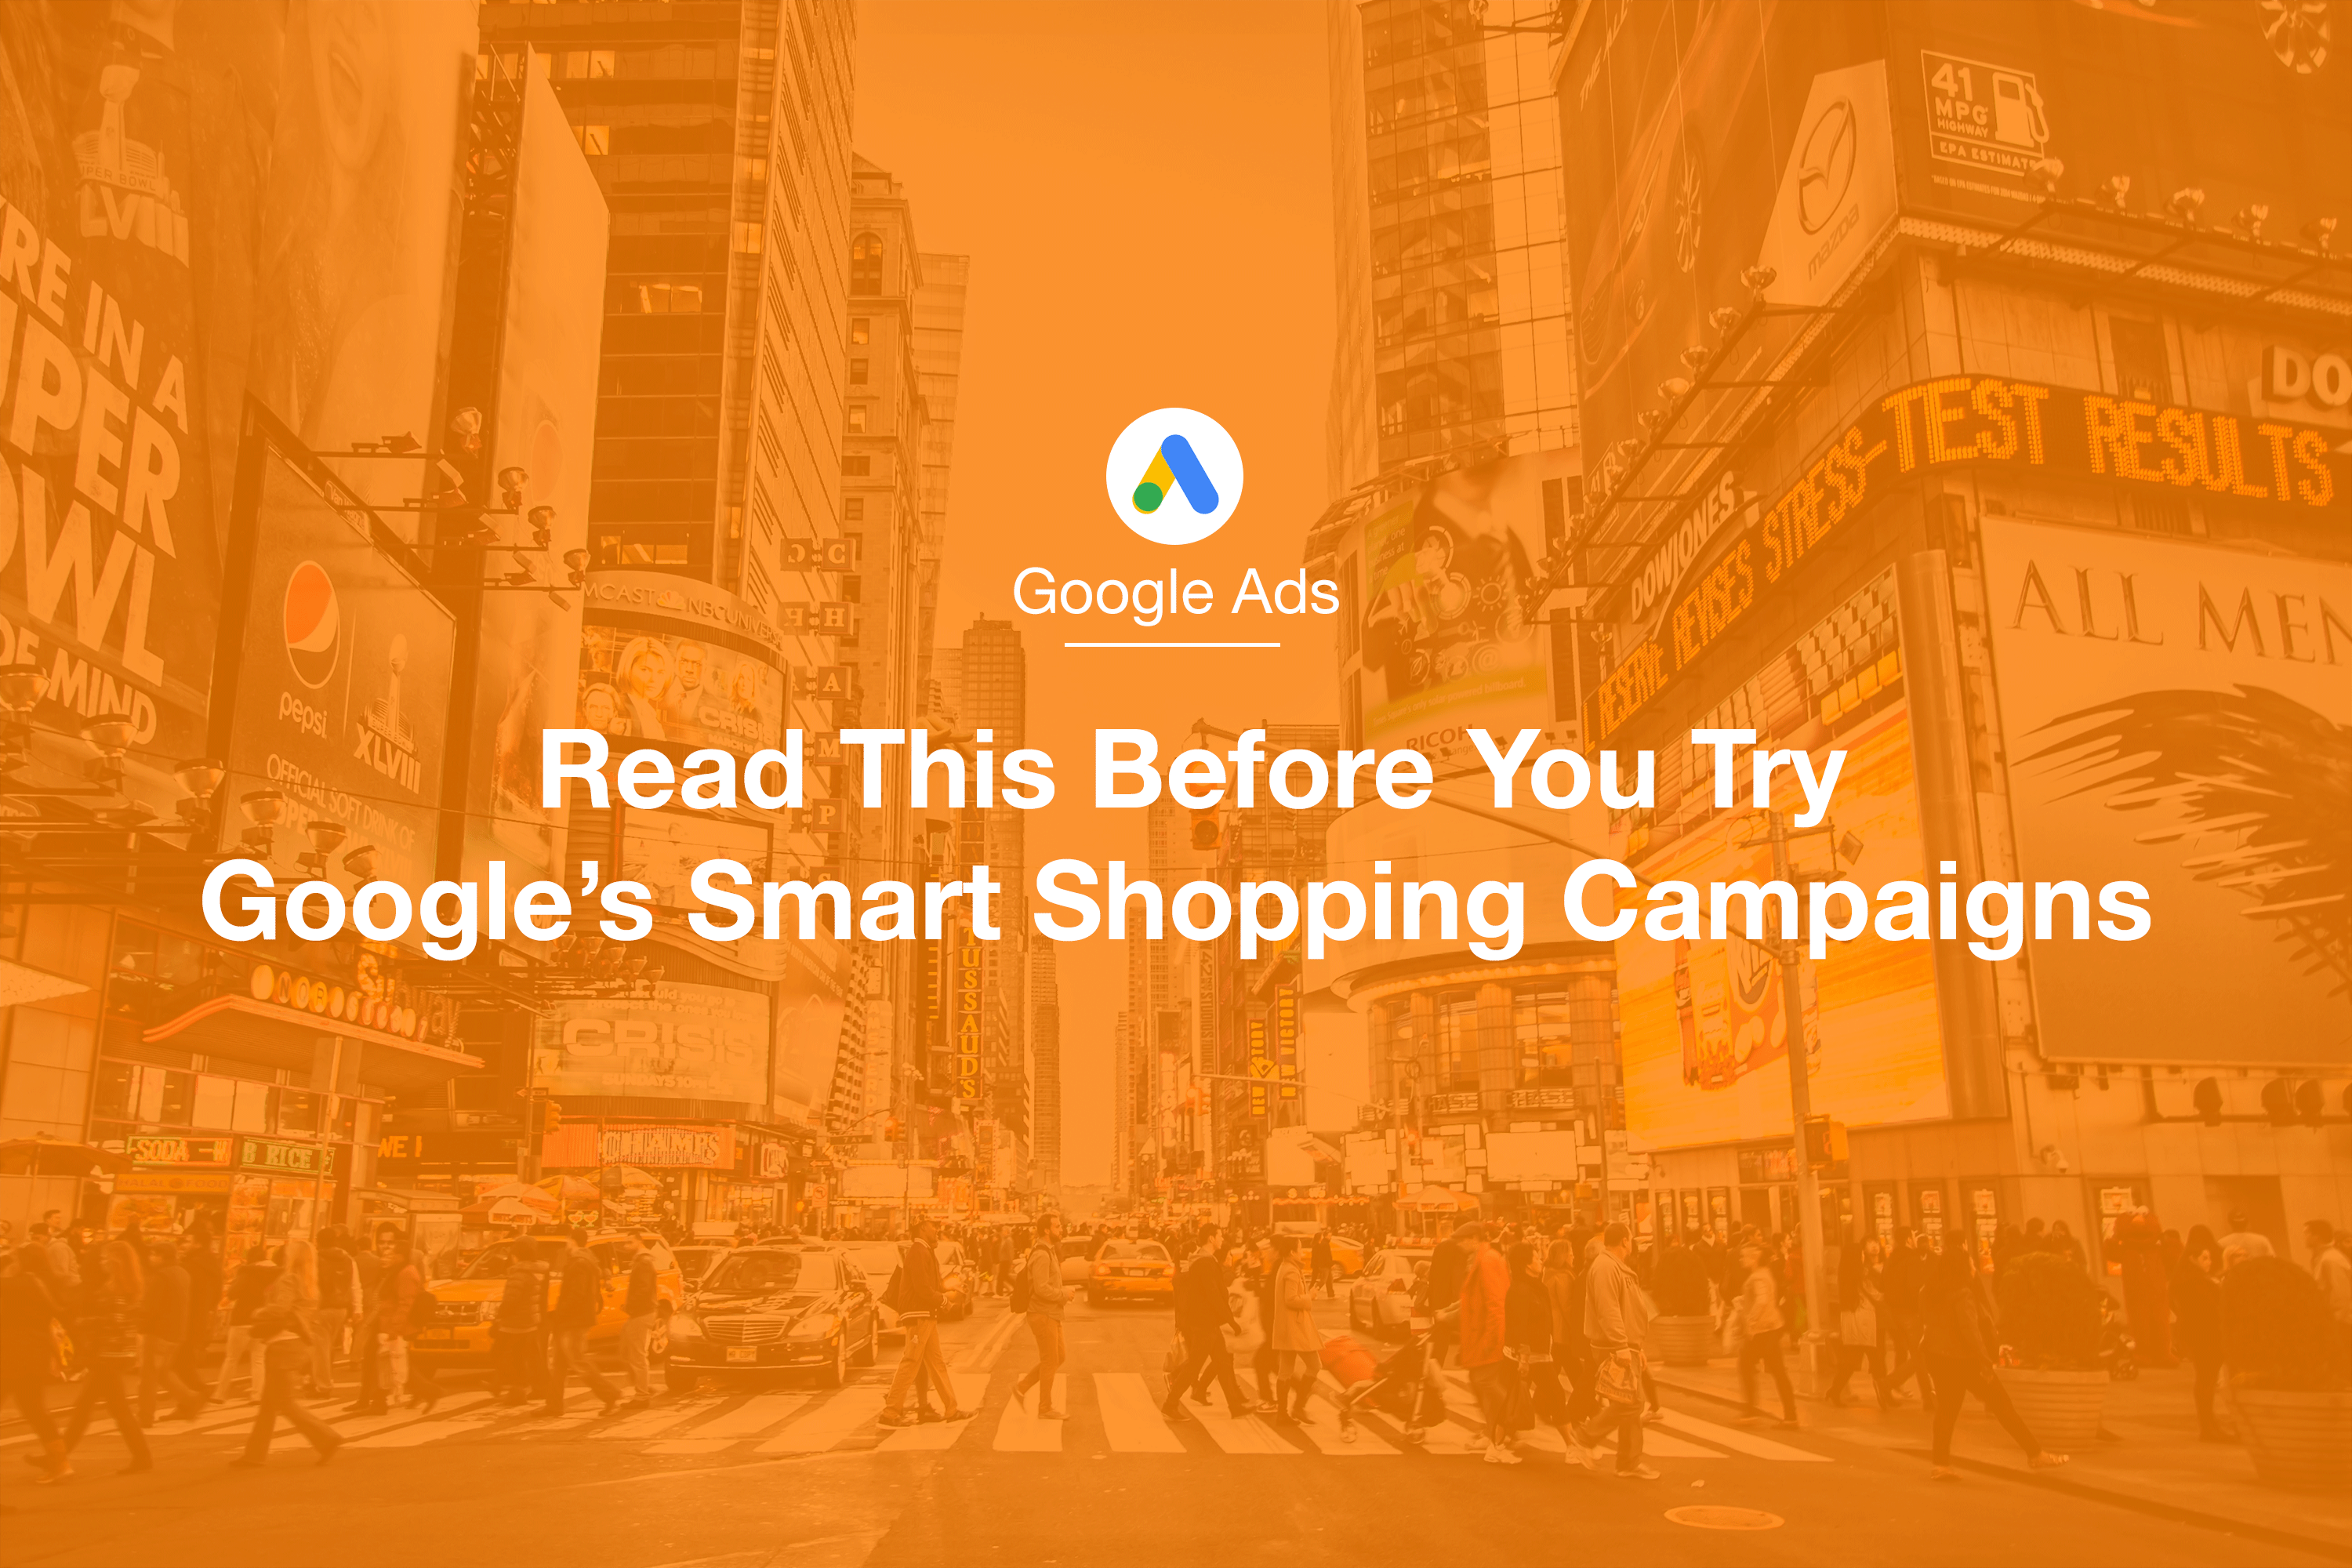 Read This Before You Try Google's Smart Shopping Campaigns